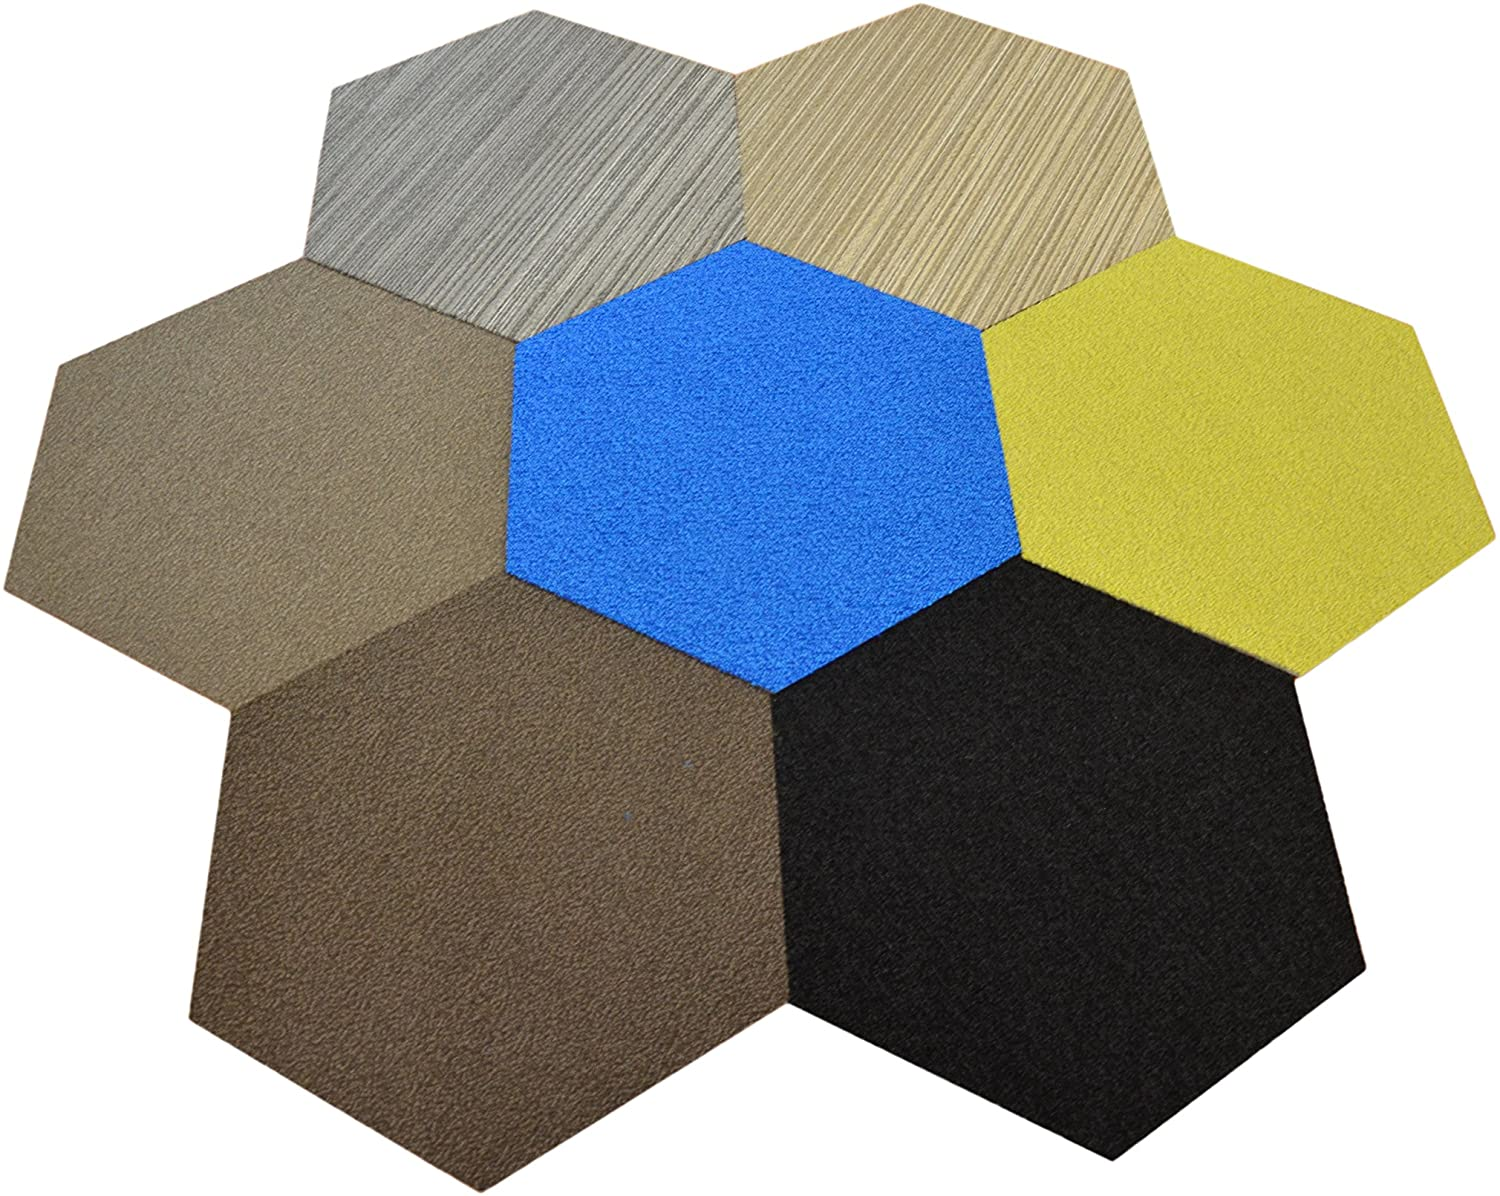 Dean Flooring Company Hexagon Shaped Commercial Carpet Tile